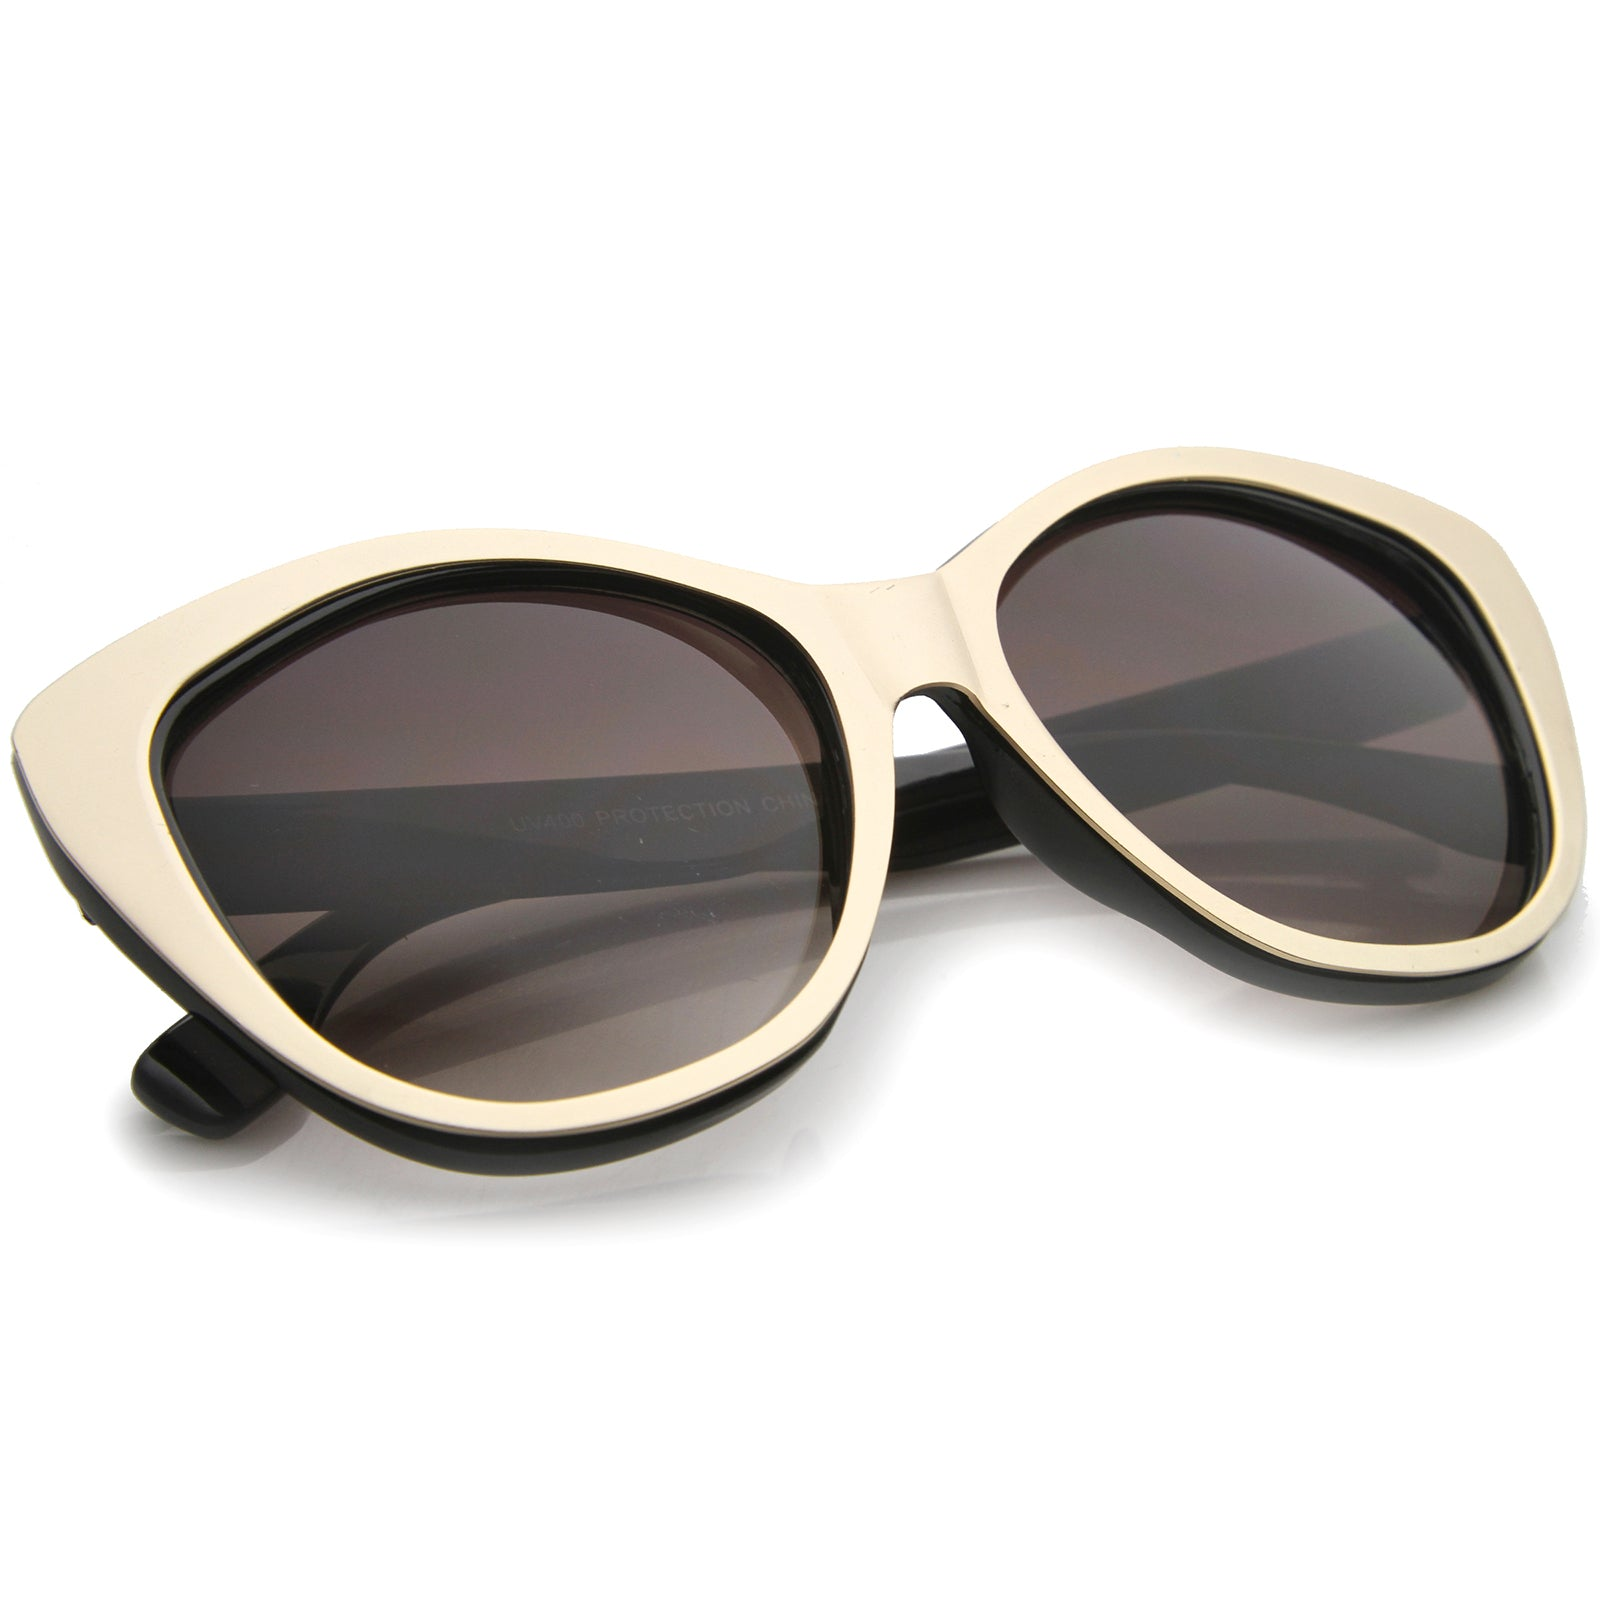 Women's High Fashion Two-Toned Tinted Lens Oversize Cat Eye Sunglasses 55mm - sunglass.la - 4